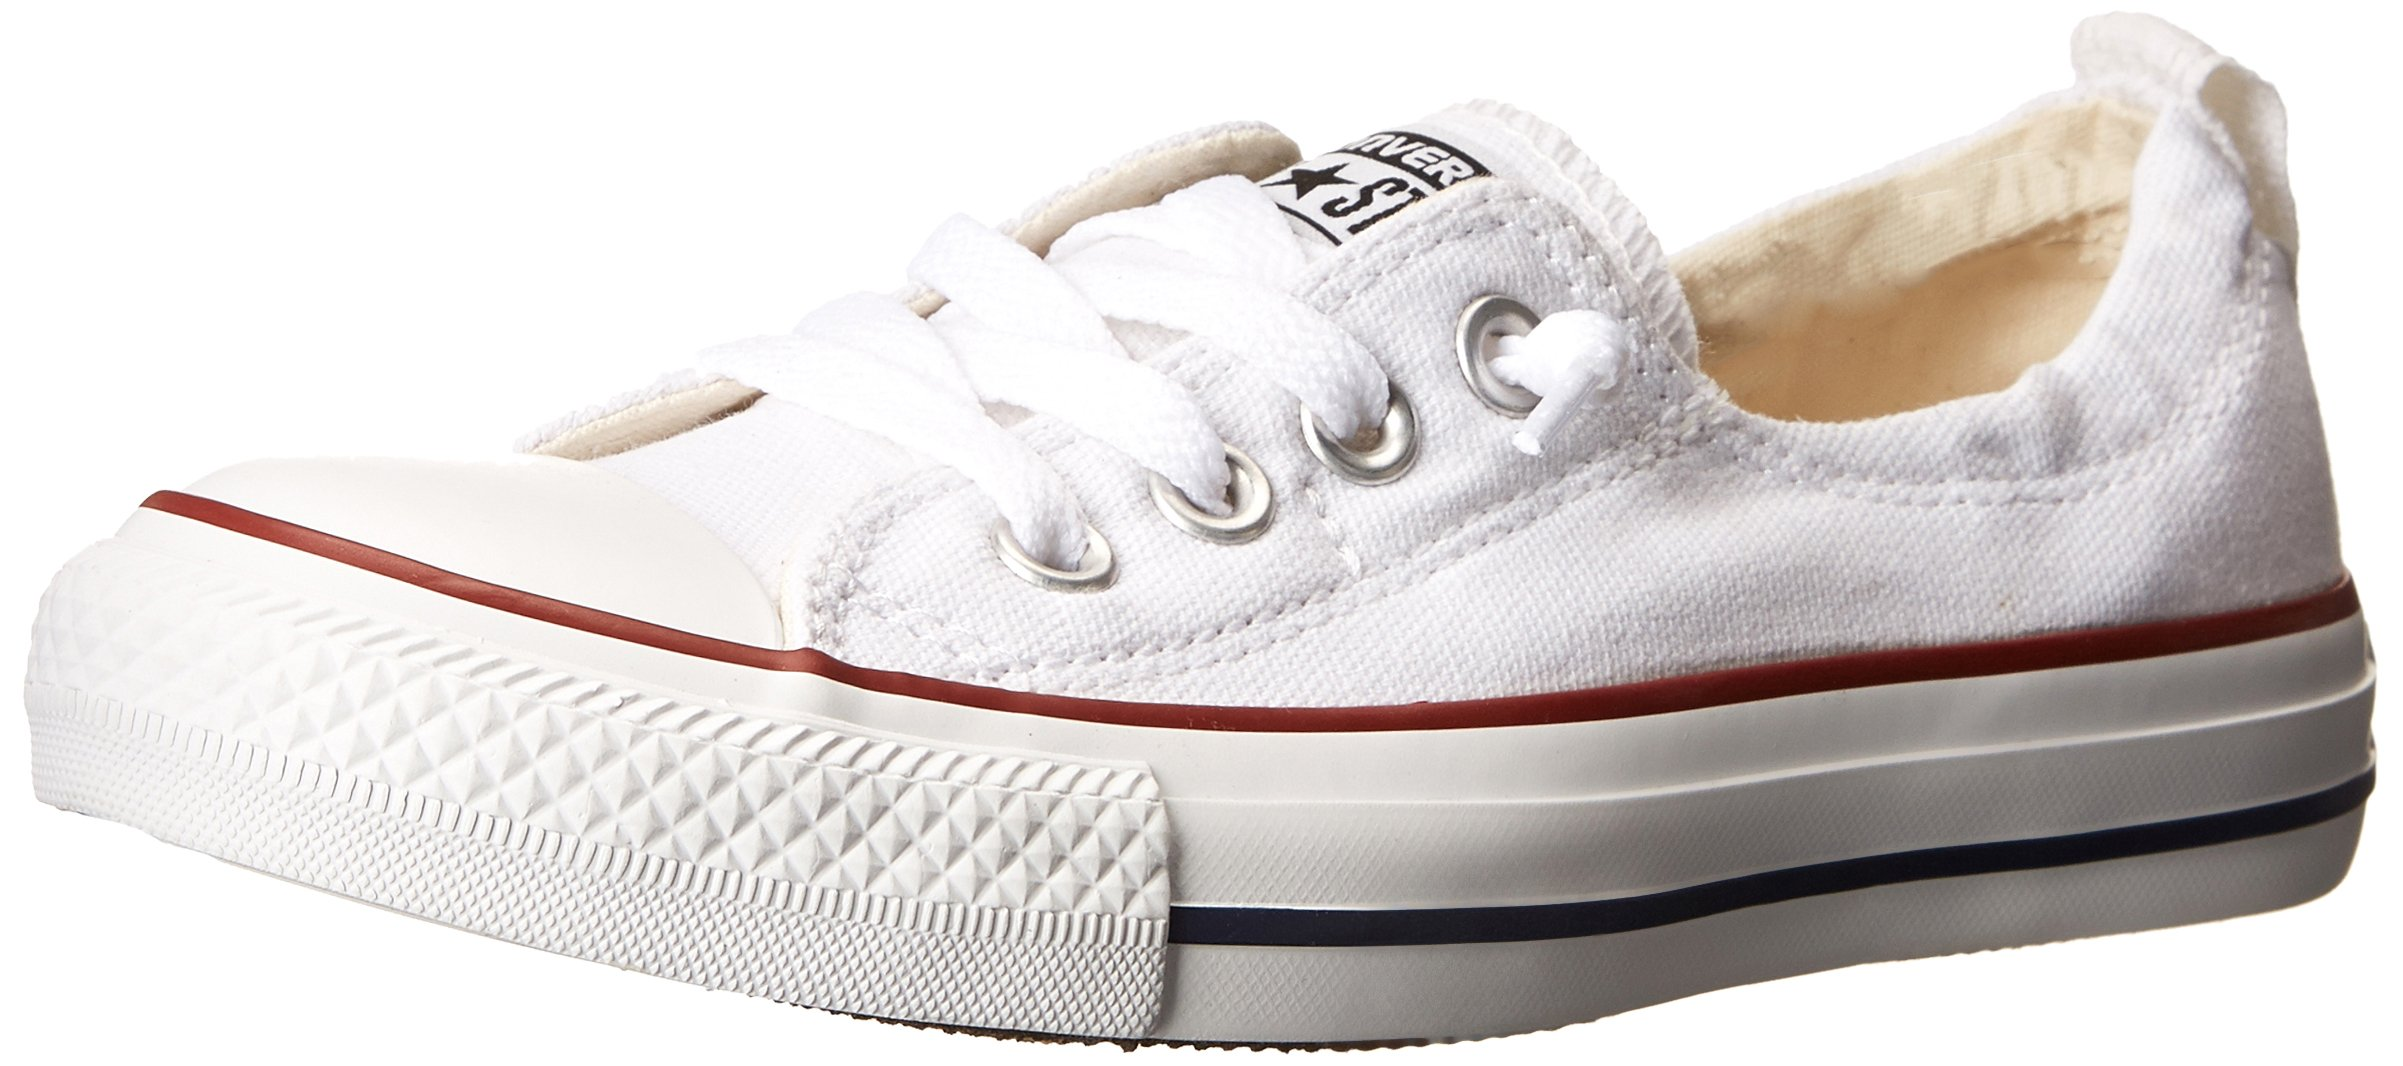 Converse Chuck Taylor All Star Shoreline White Lace-Up Sneaker - 7.5 B(M) US Women / 5.5 D(M) US Men